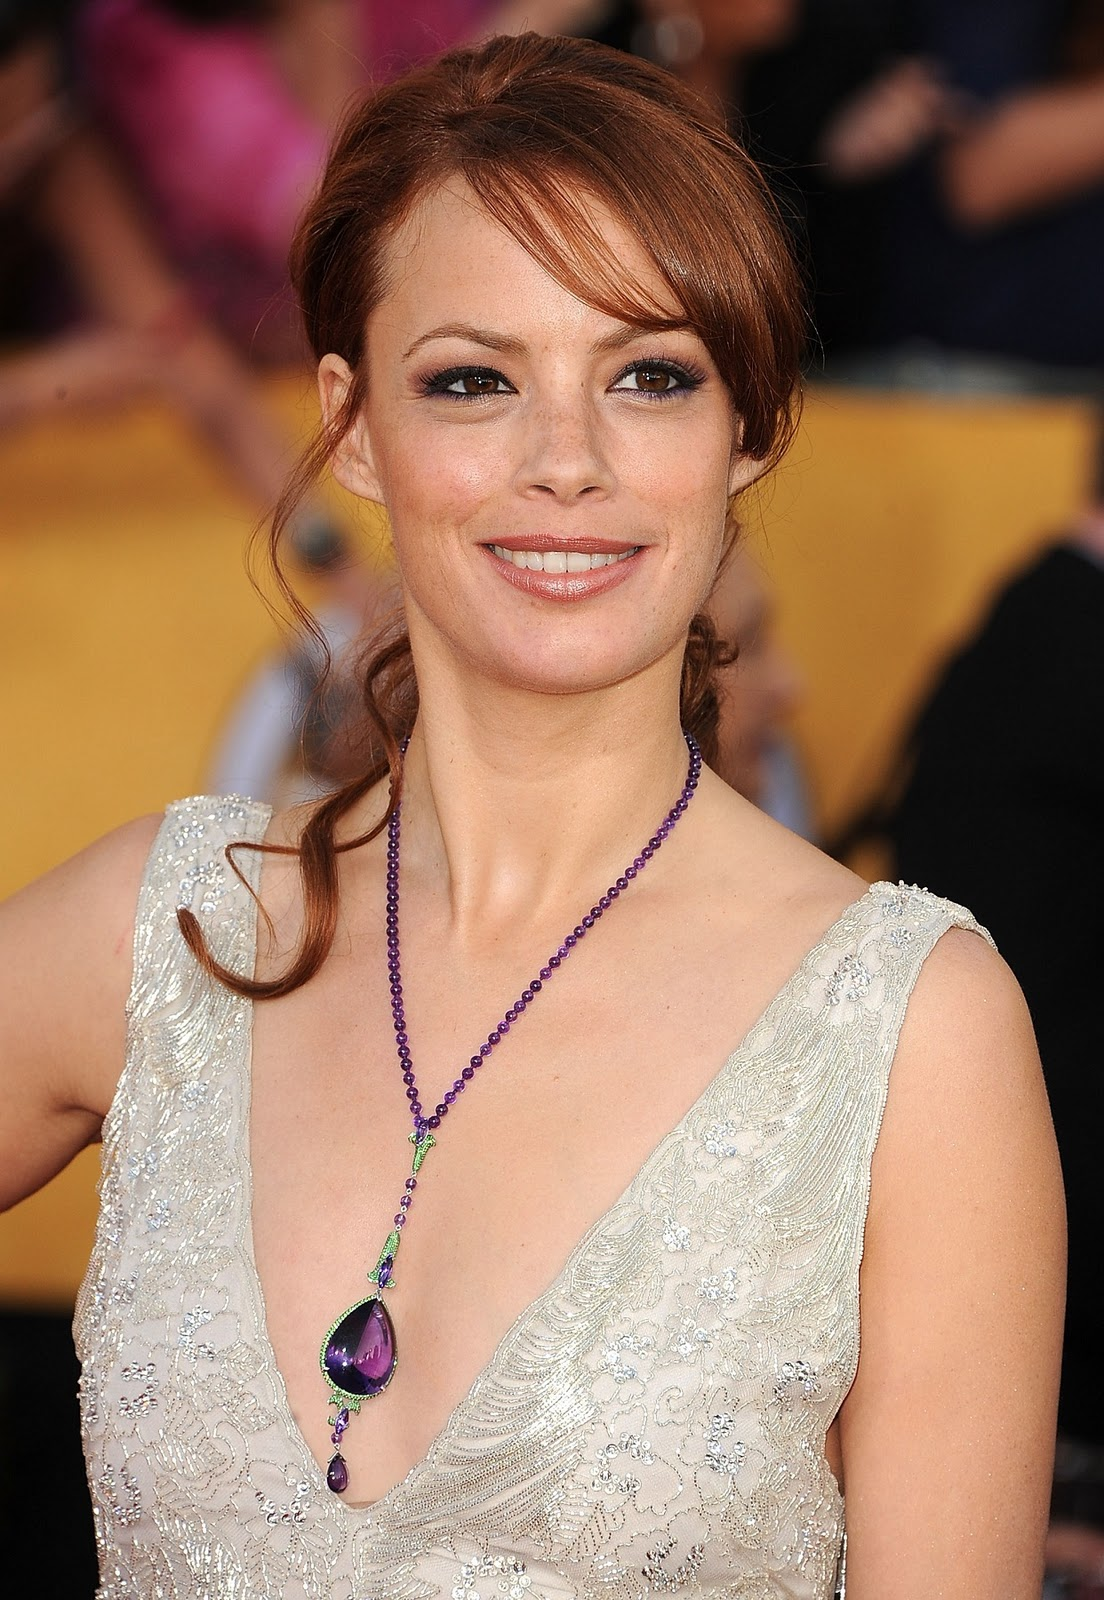 Berenice Bejo - Gallery Photo Colection